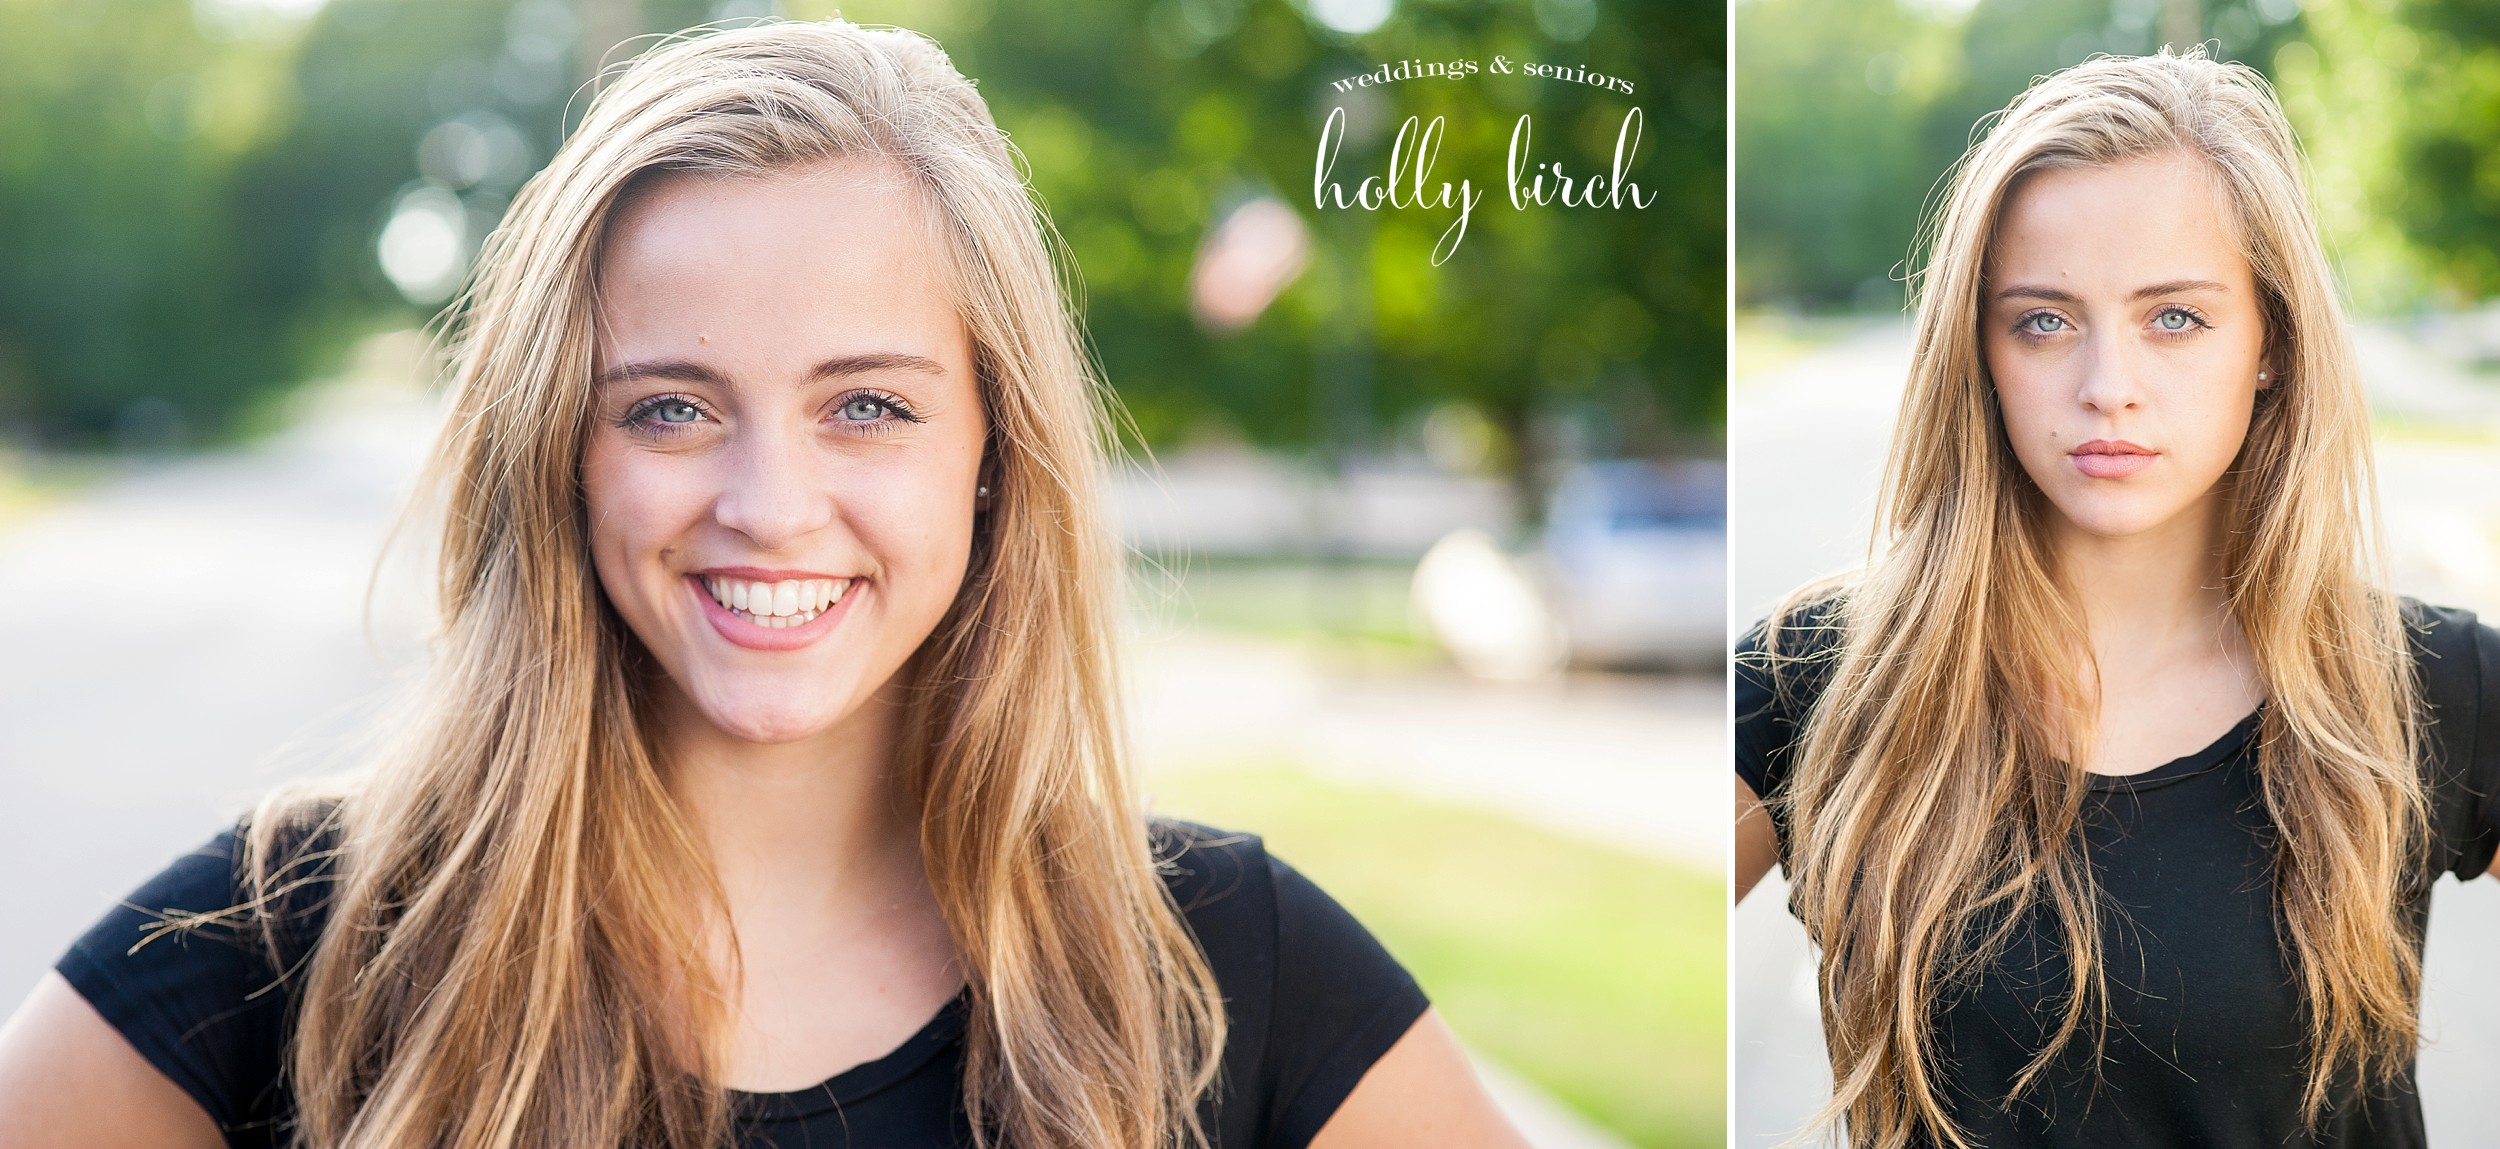 Senior girl images